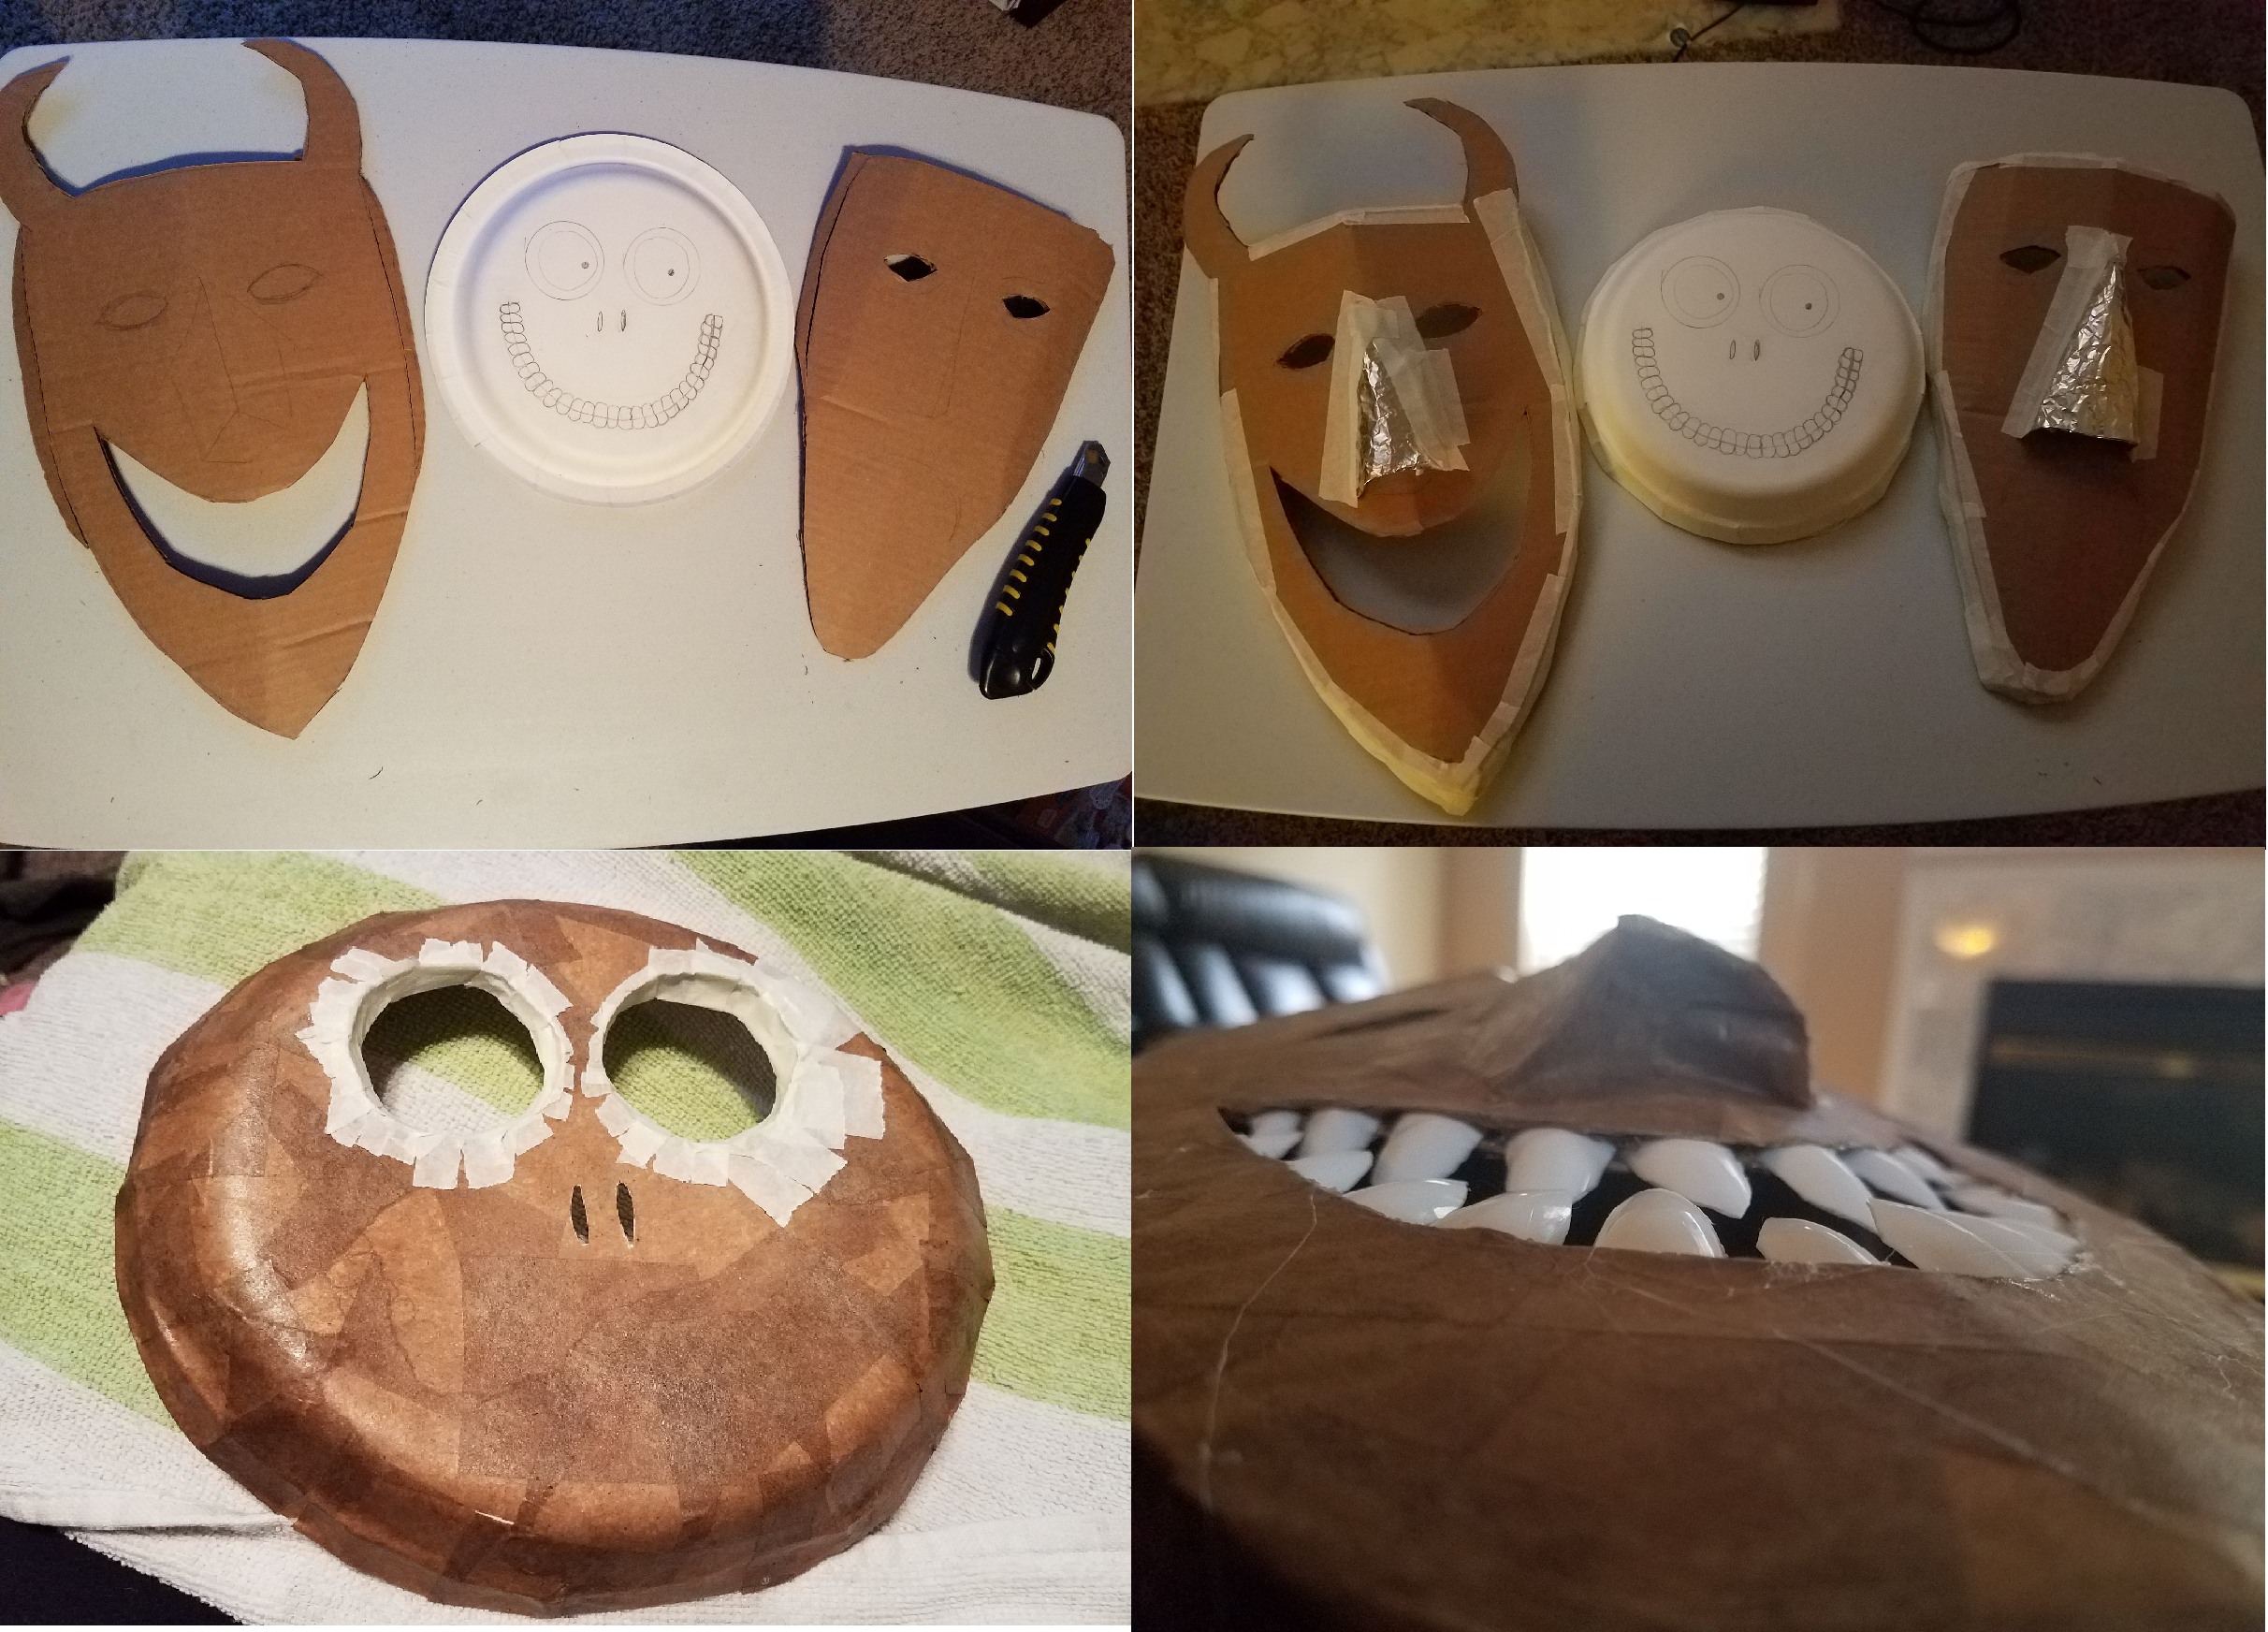 ... Shock masks are bent to begin shaping. Aluminum foil/scraps of cardboard are used for noses. Eye buildup is done in Barrel after first layer of paper ... & Lock Shock and Barrel Join The Nightmare Before Christmas Clan ...